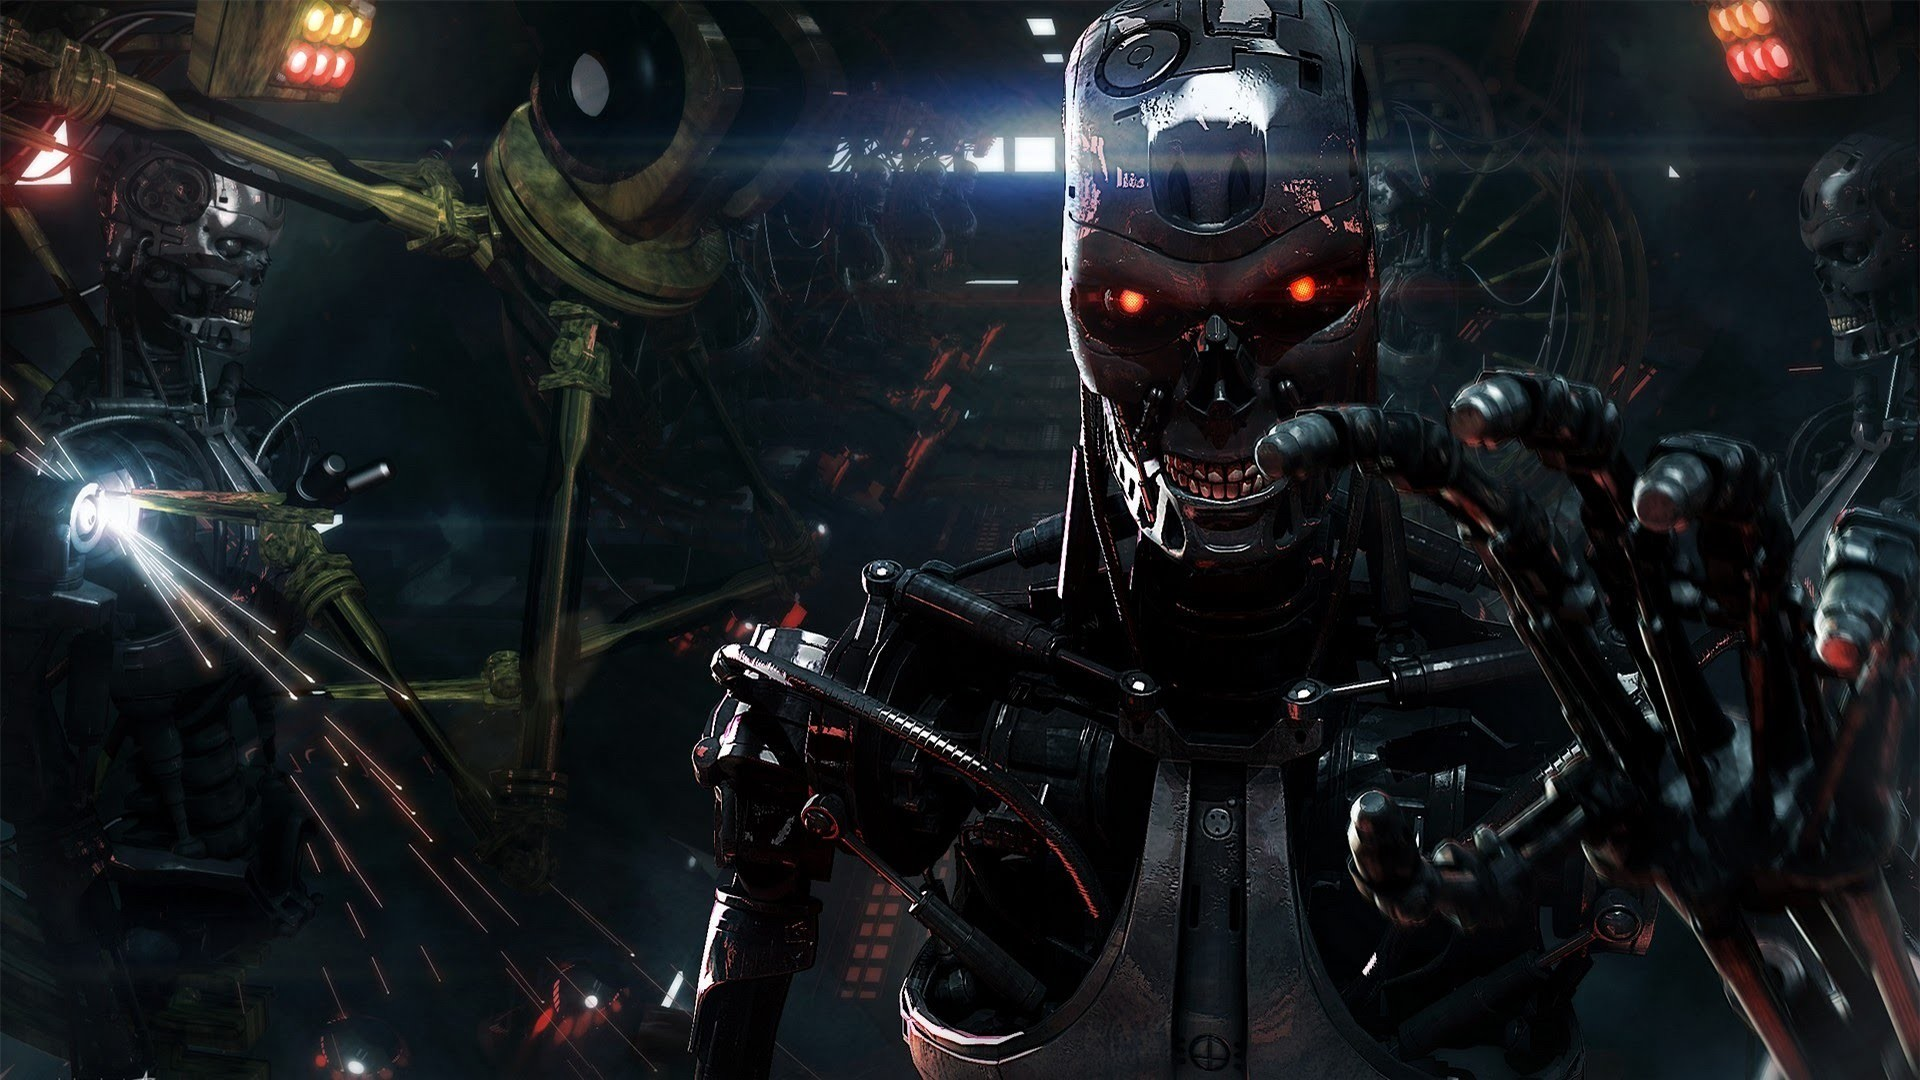 Terminator Salvation Terminator Salvation Wallpaper Hd 70 43 Images